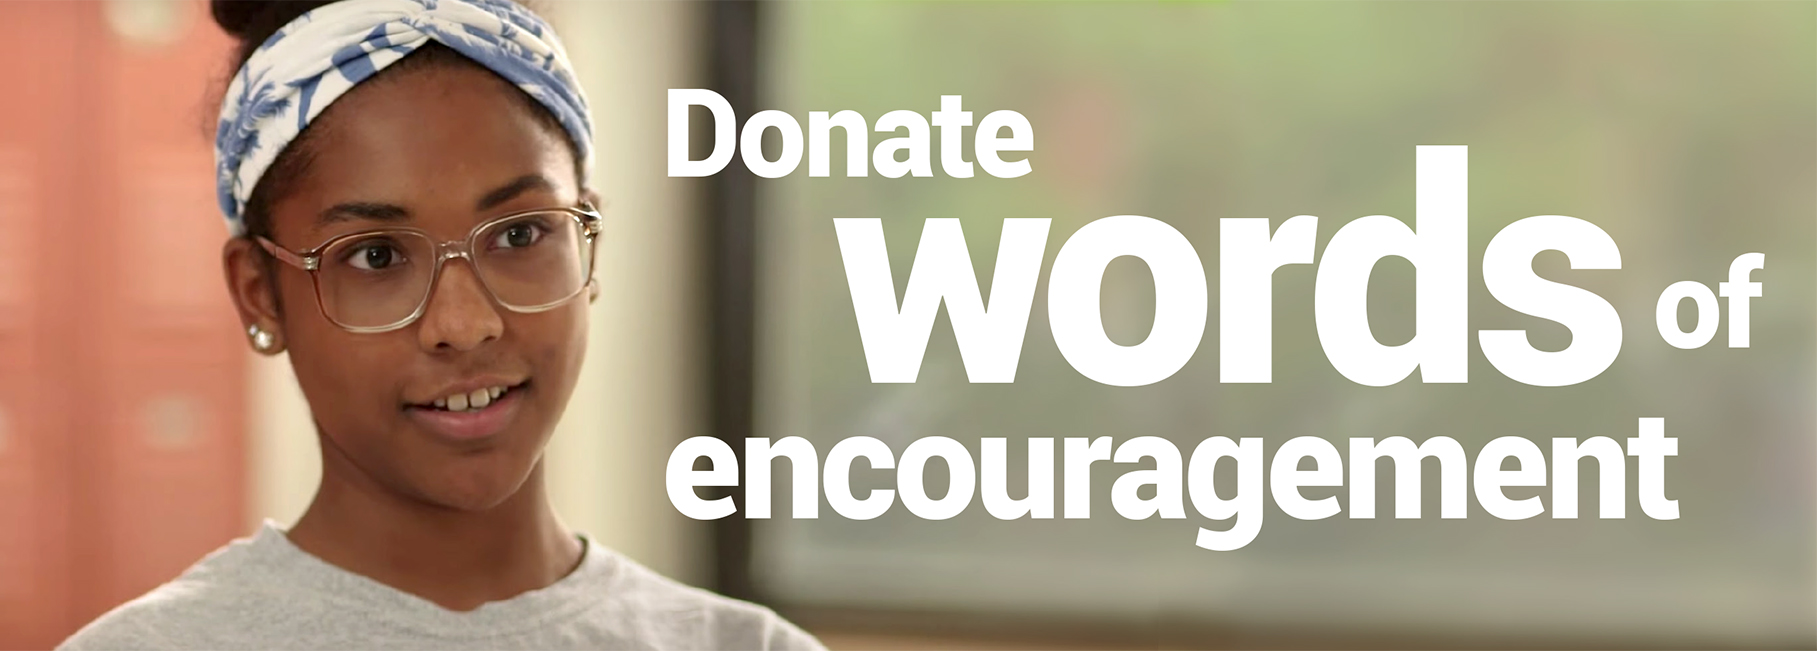 donate-words-of-encouragement